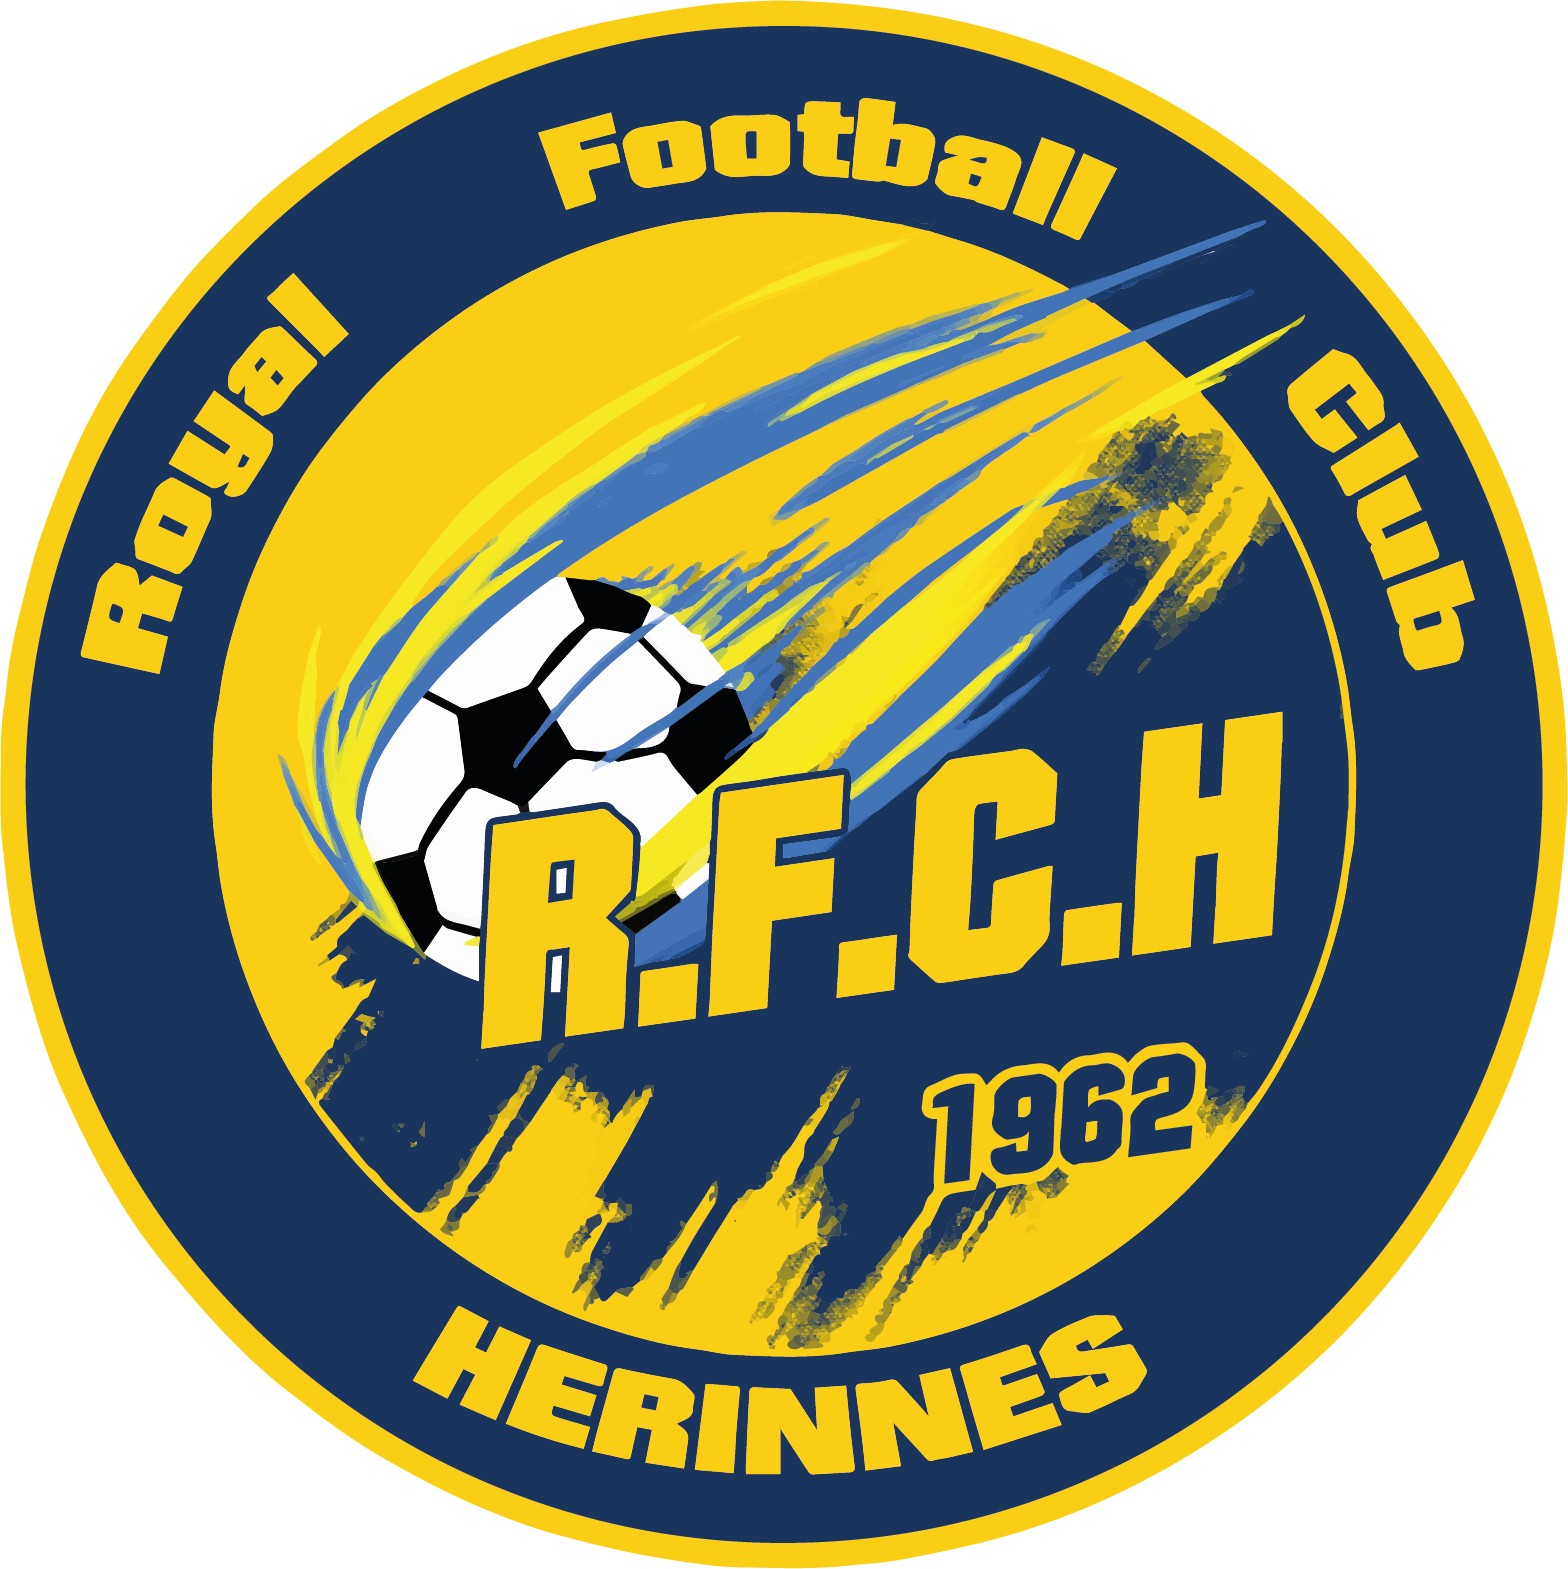 1 - R.F.C. Herinnes A